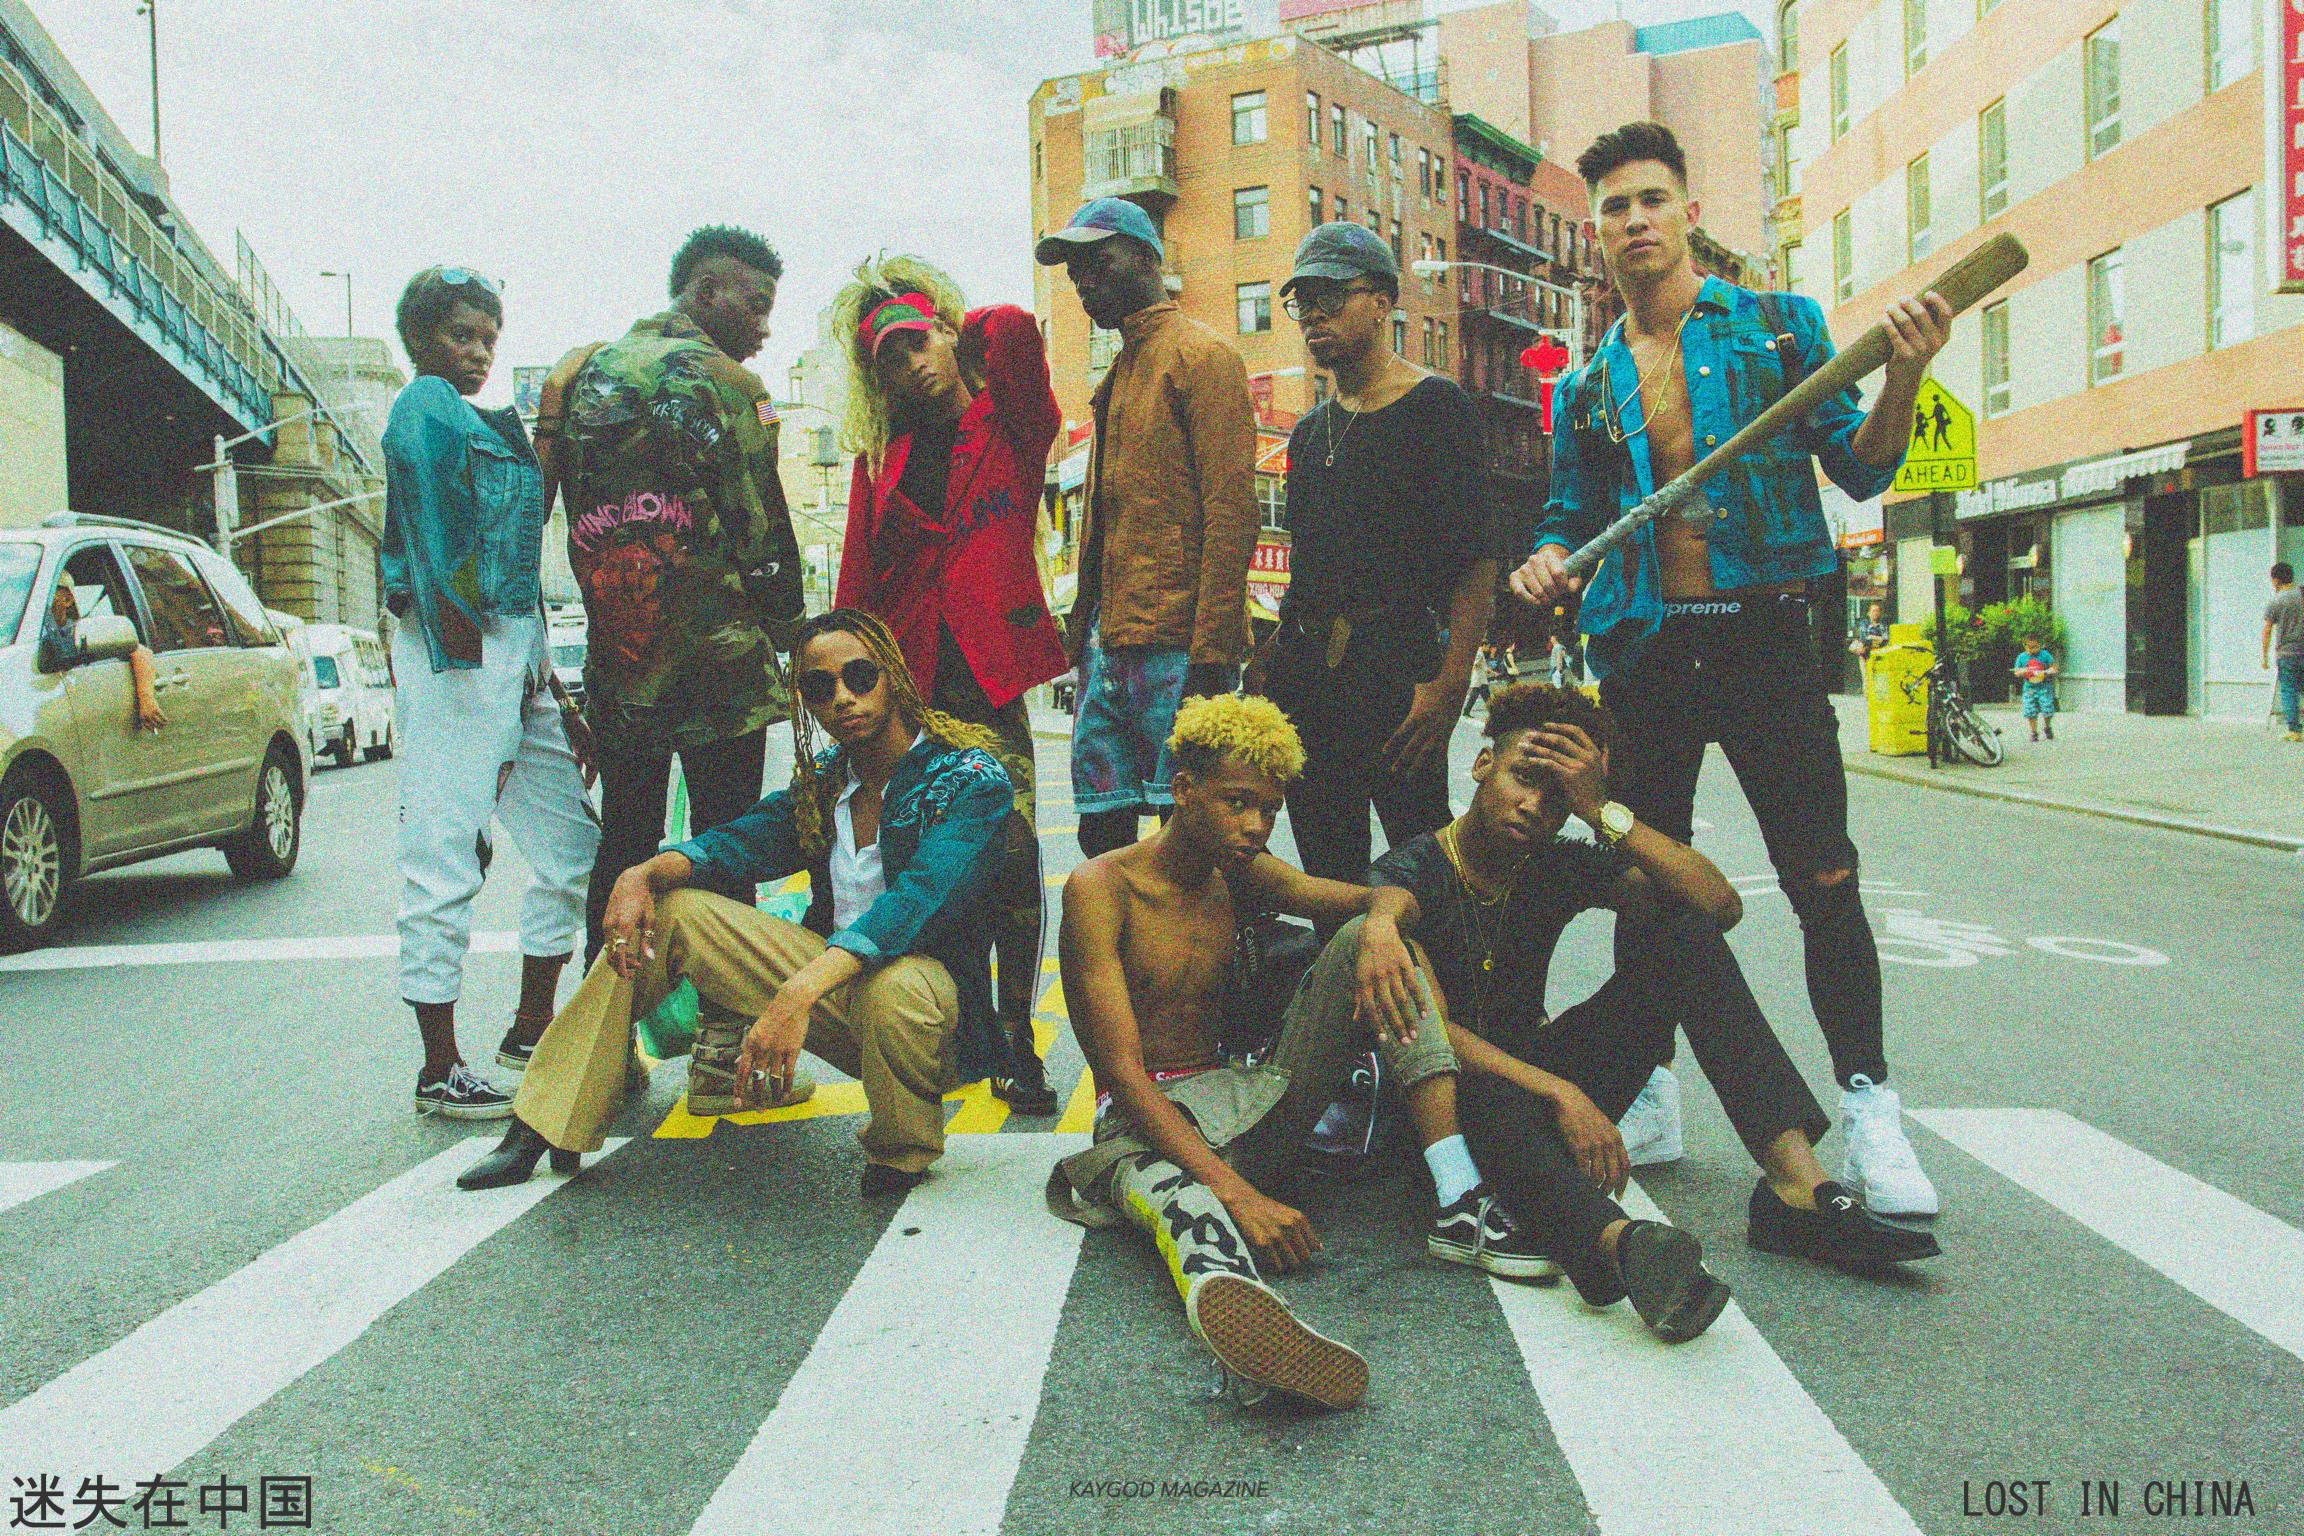 Designer, Sunaé Long, collabs with KAYGOD and more in our loaded Chinatown, NY editorial. - CLICK TO VIEW